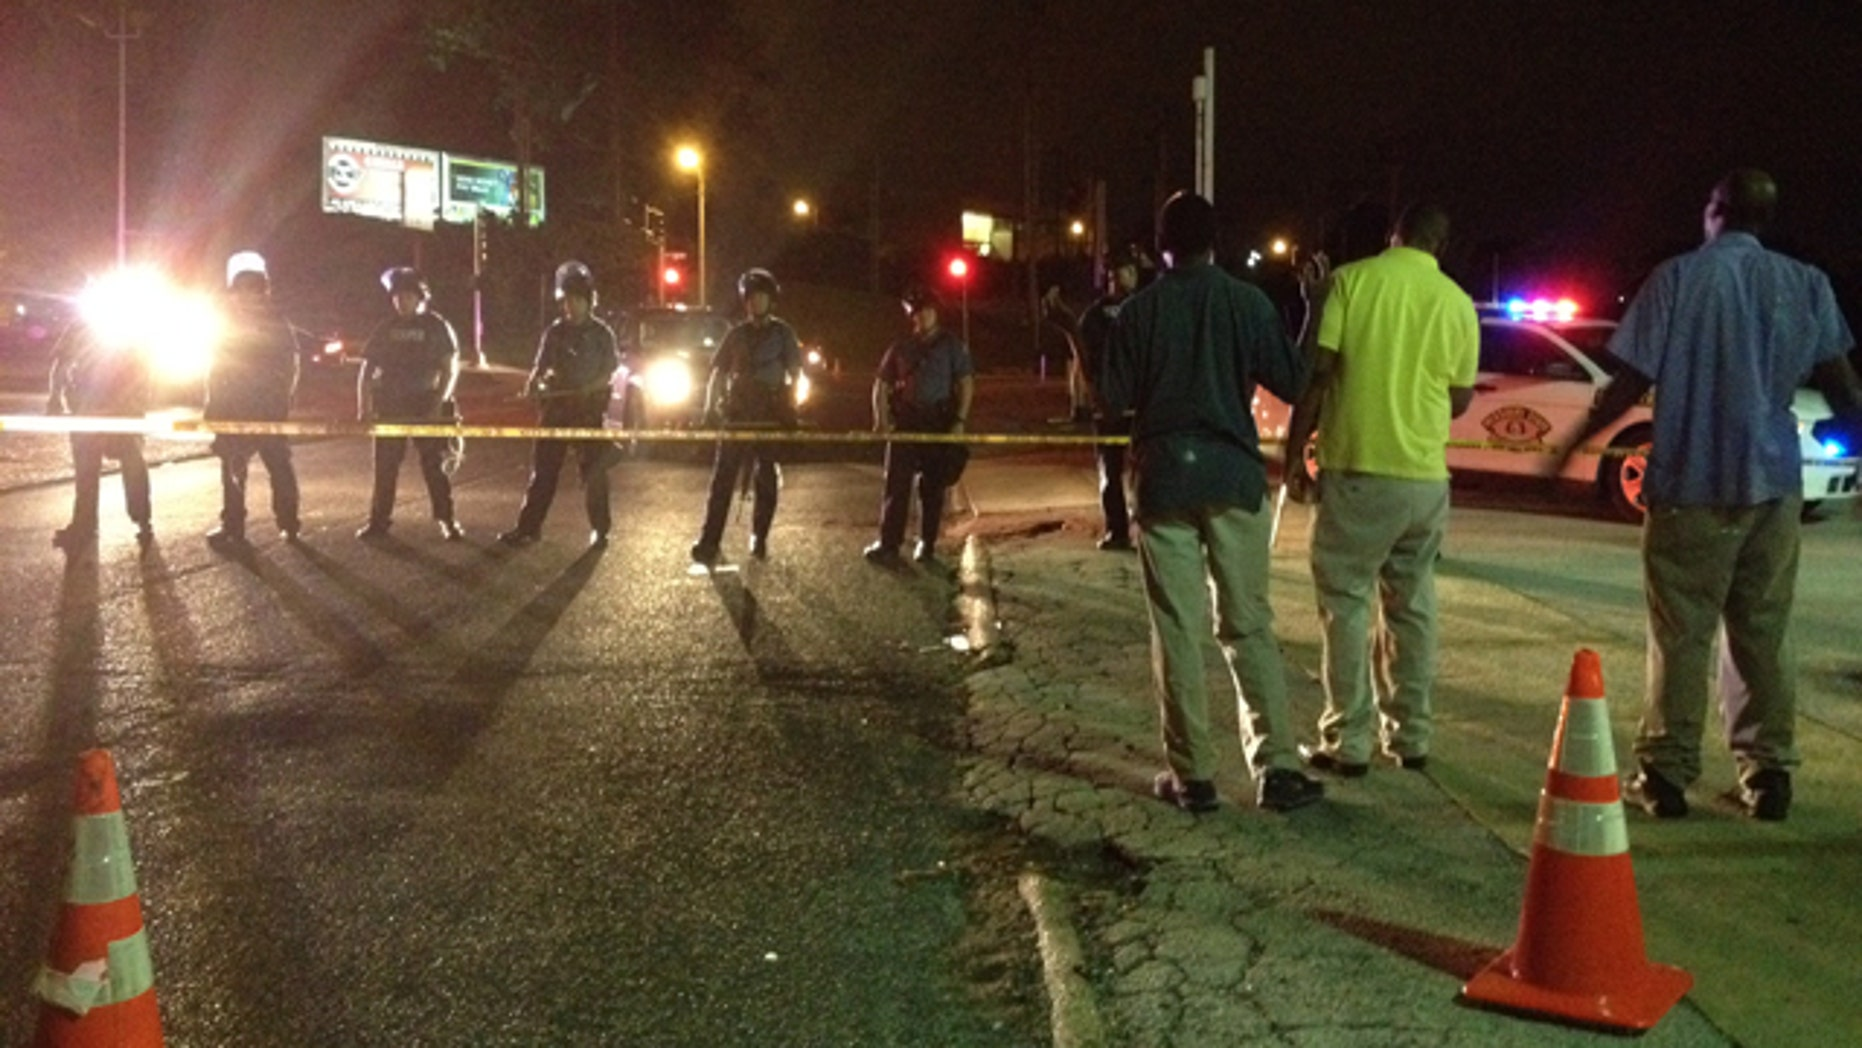 August 11, 2014: In this image made with a mobile phone, riot police line up in Ferguson, Mo. Authorities say more than 30 people have been arrested in Ferguson, where crowds have looted and burned stores, vandalized vehicles and taunted police after a vigil for an unarmed black man who was killed by police. (AP Photo/Jeff Roberson)